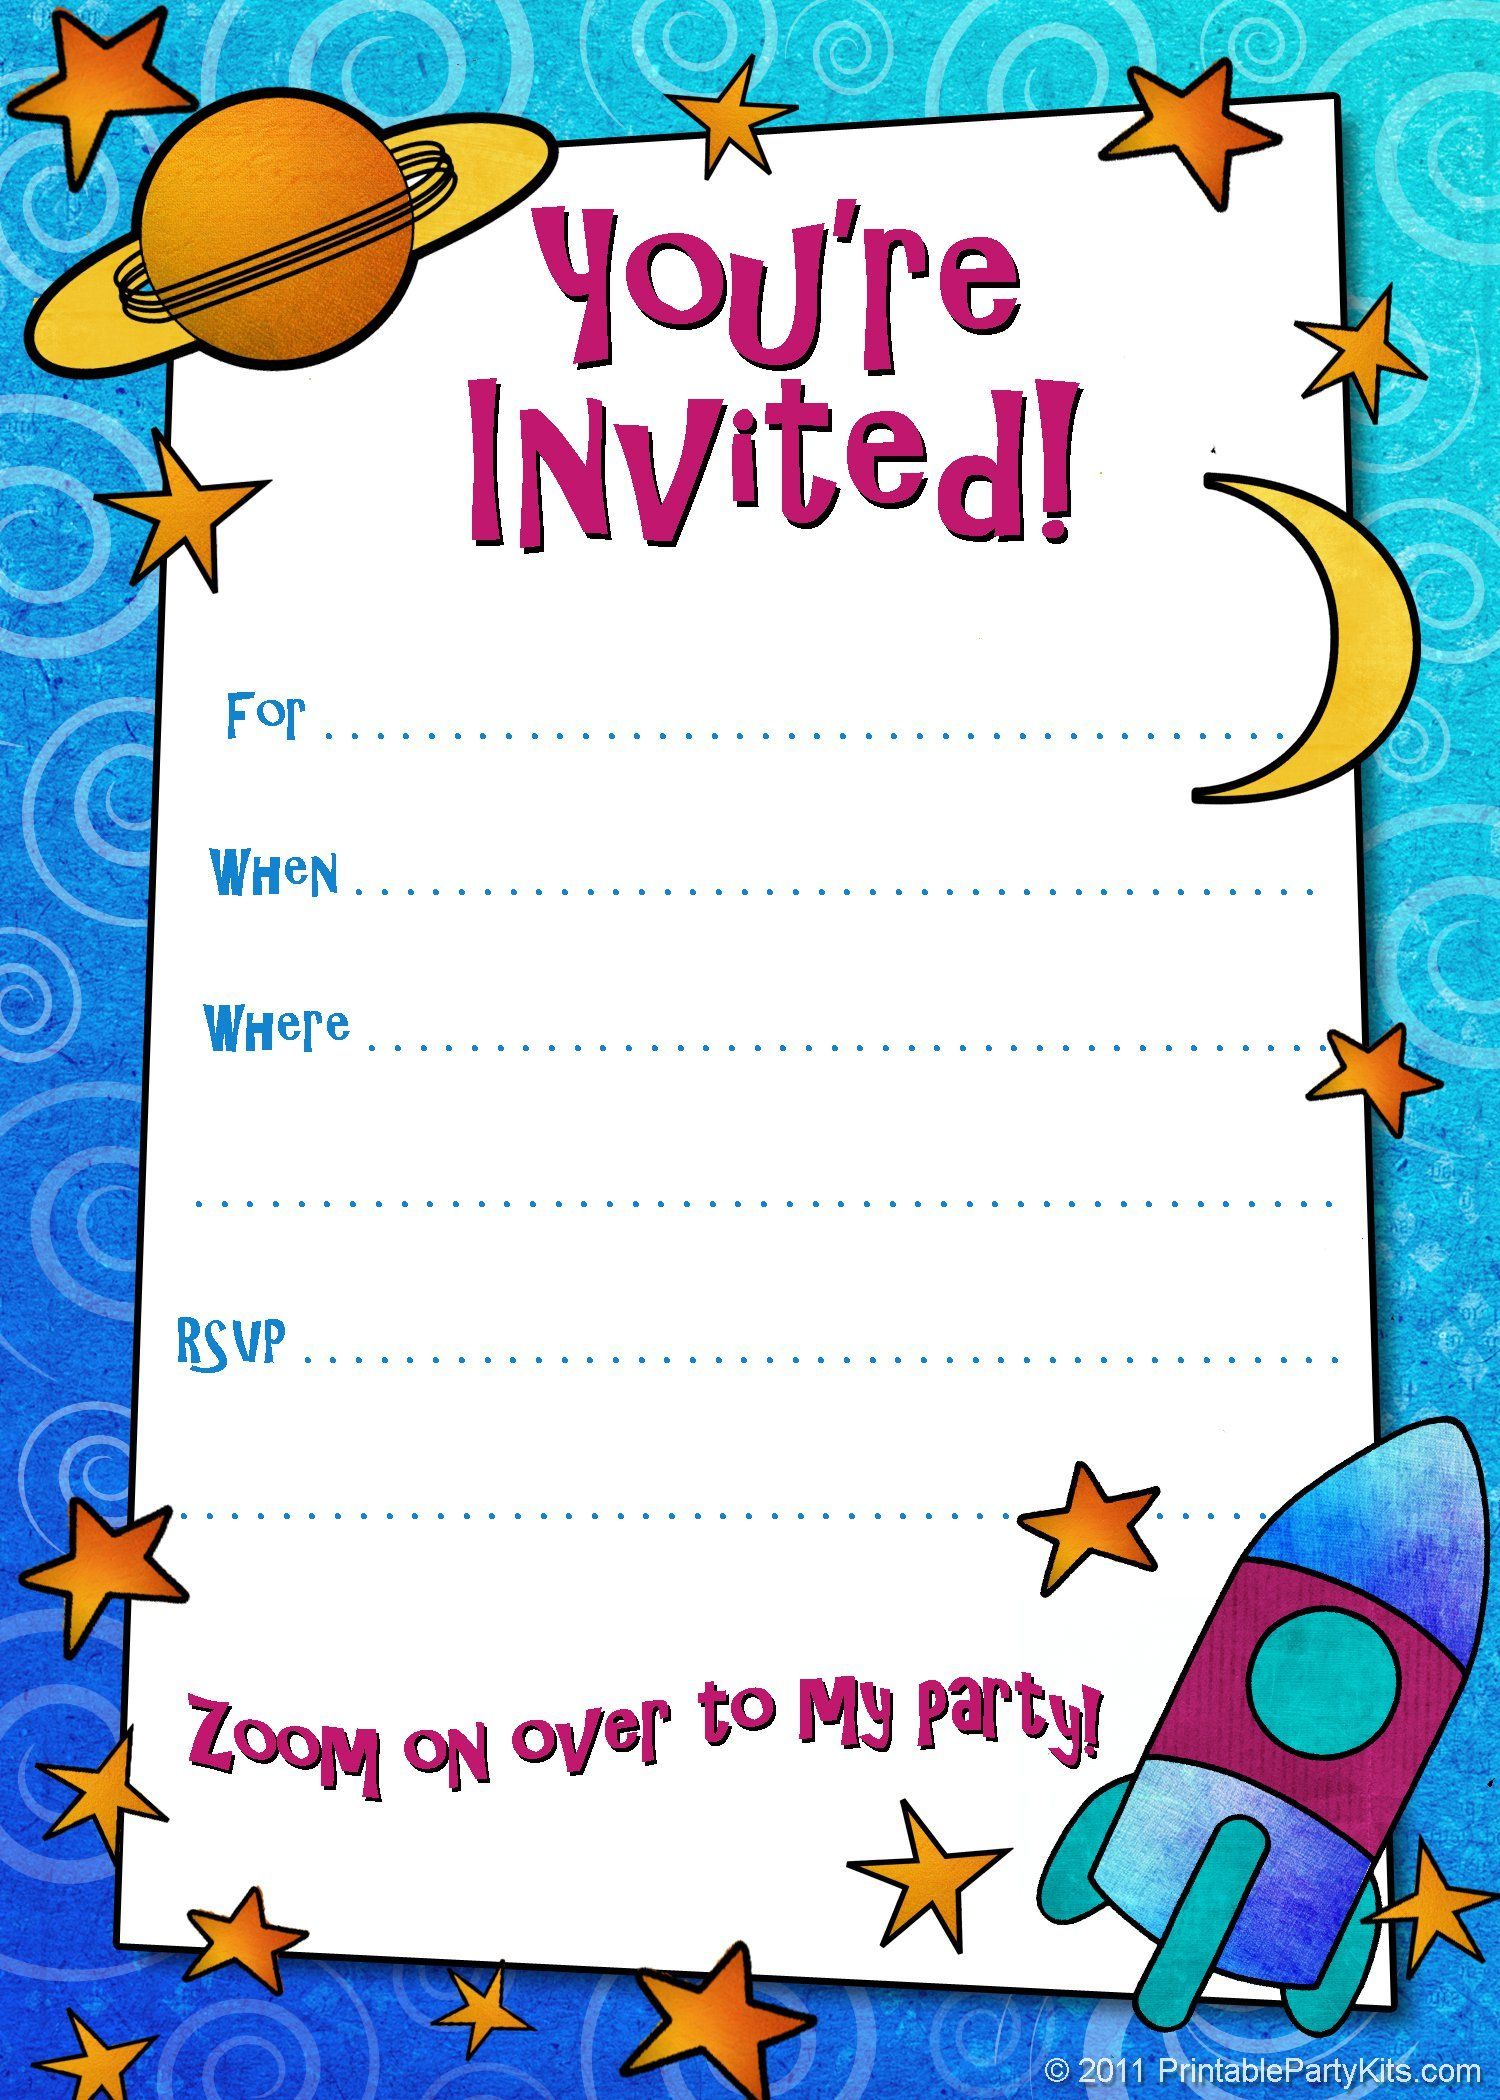 Print Invitation Cards Online Free Printable Birthday Invitations Kids